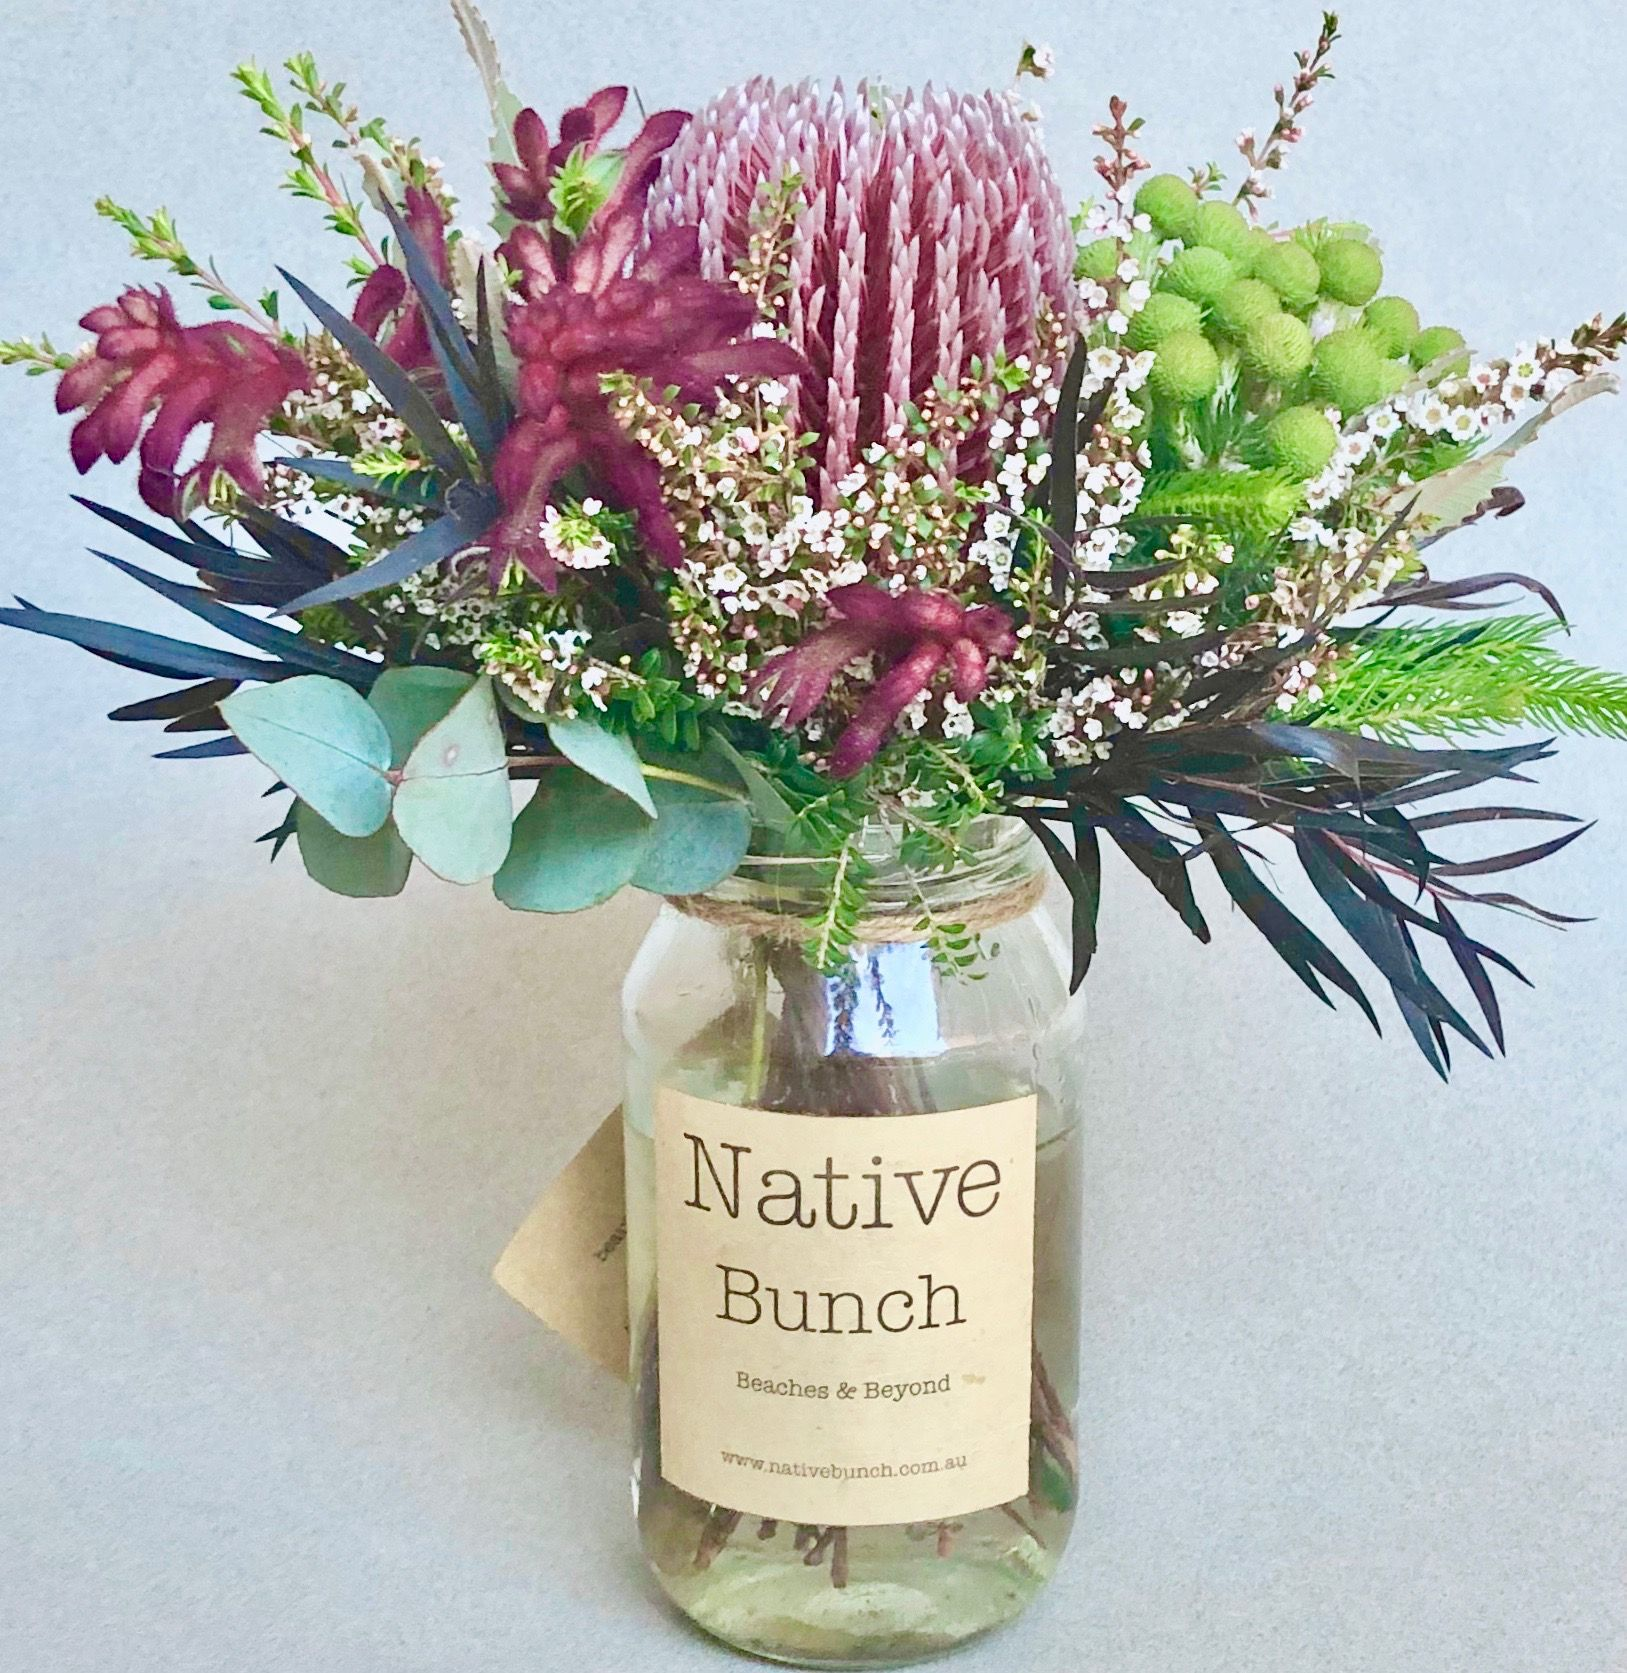 Native Flower Posy By Native Bunch In 2020 Flower Delivery Australian Native Flowers Flowers